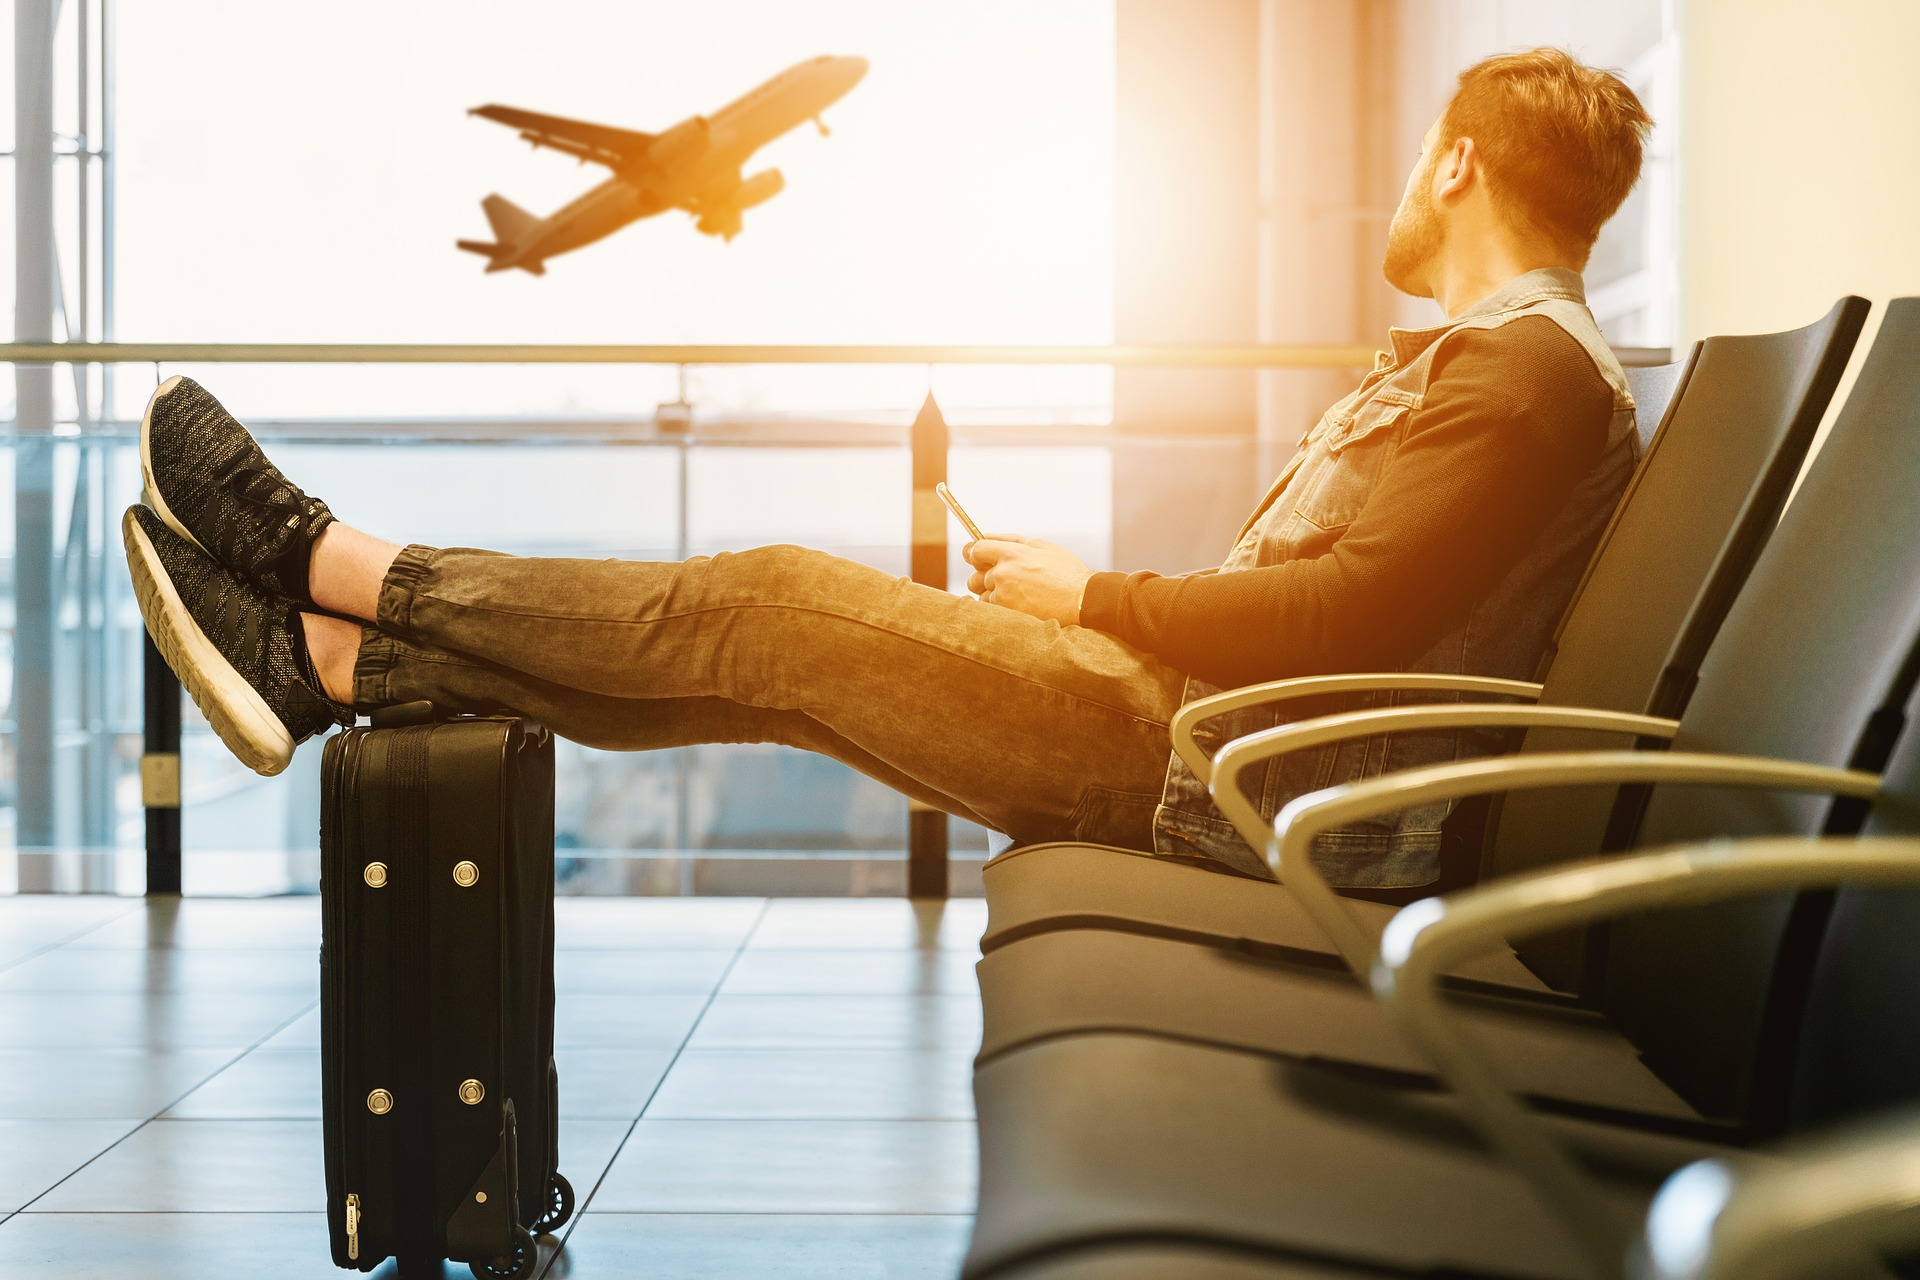 Man sitting with legs up on luggage looking out window at airplane taking off